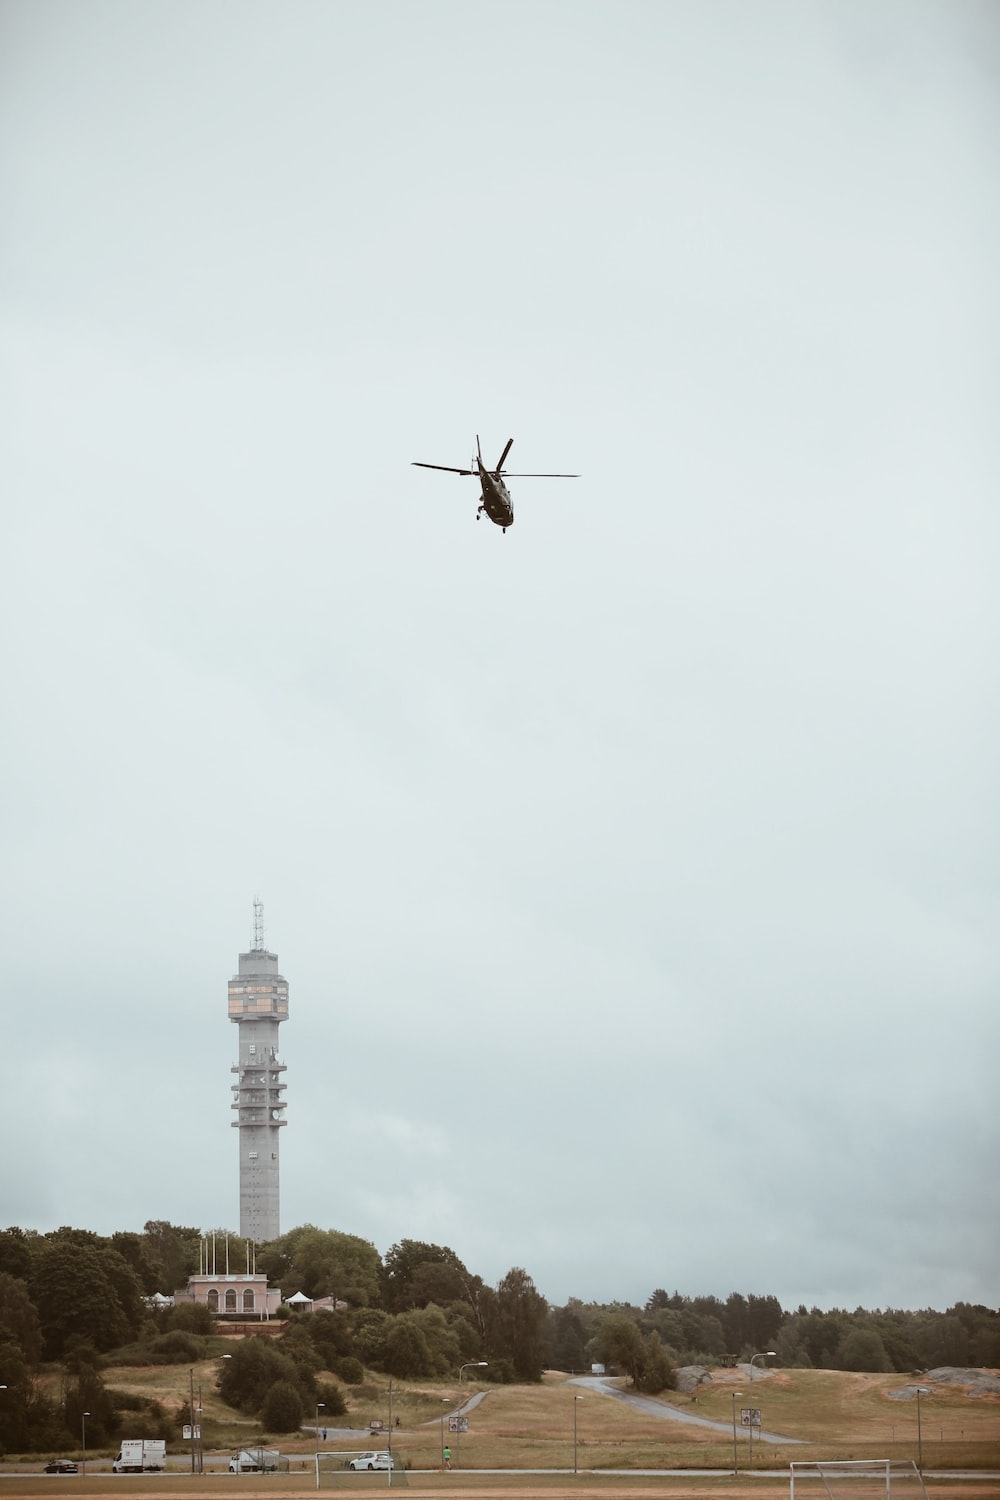 low-angle photography of black helicopter over gray concrete tower during daytime